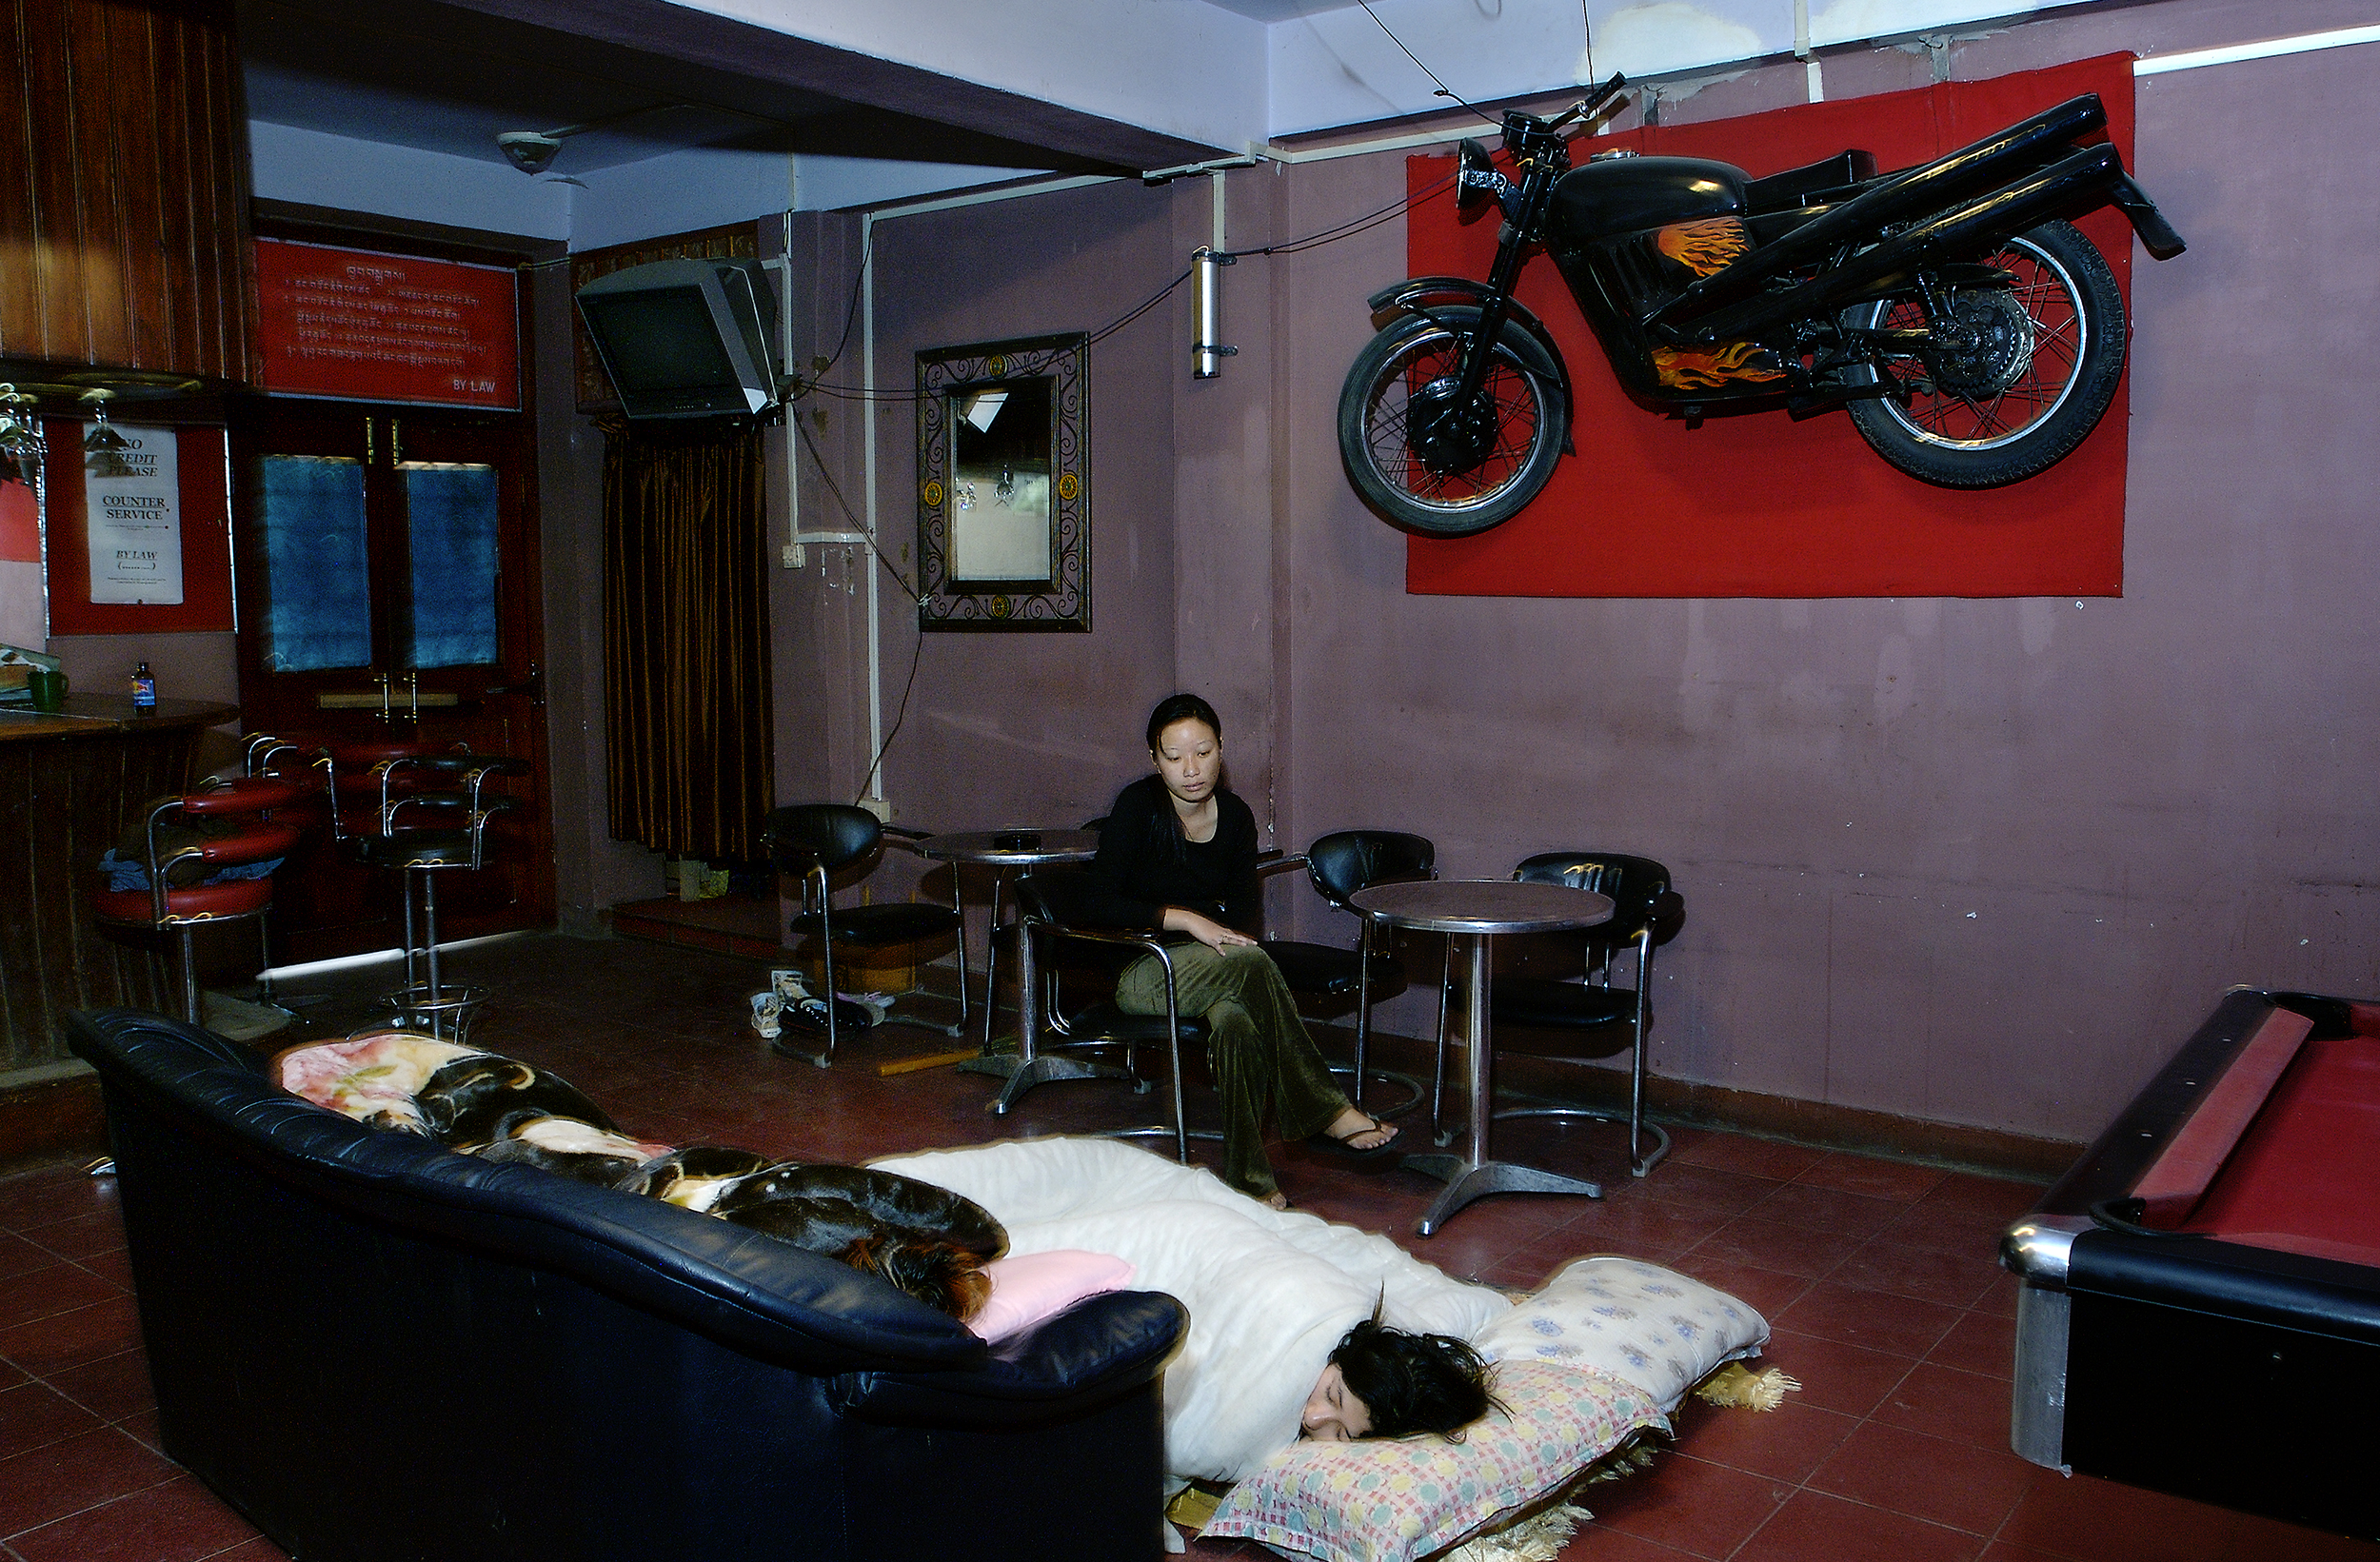 Tashi Lhamo    (sitting) and her friends sleep after business hours in The Twilight Lounge bar.   She is one of an increasing number of young people moving to the cities hoping to find work. 05.10.07 Thimphu  .